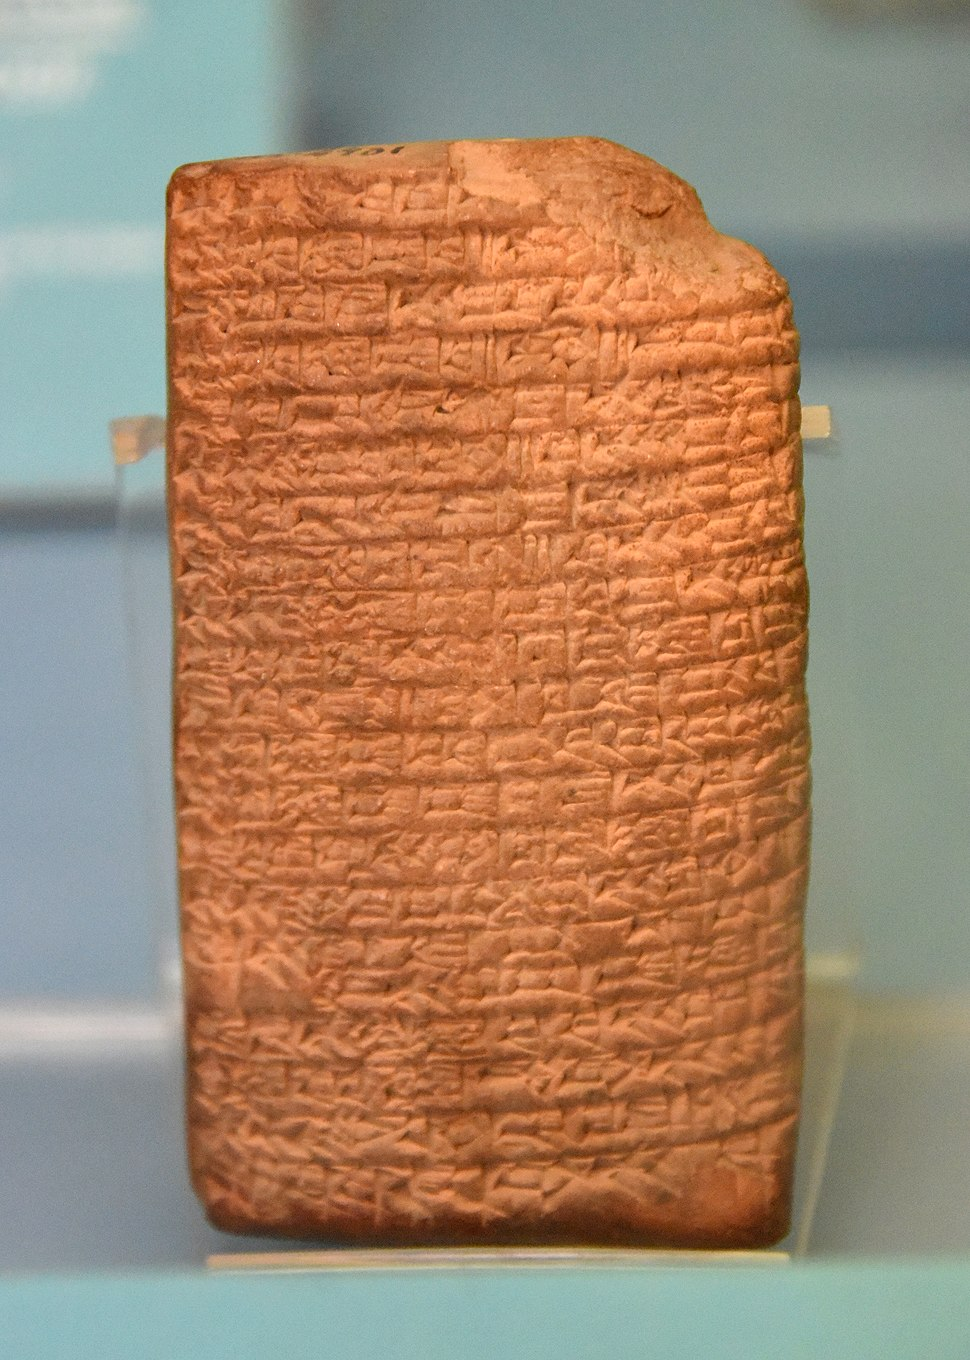 The oldest love poem. Sumerian terracotta tablet from Nippur, Iraq. Ur III period, 2037-2029 BCE. Ancient Orient Museum, Istanbul